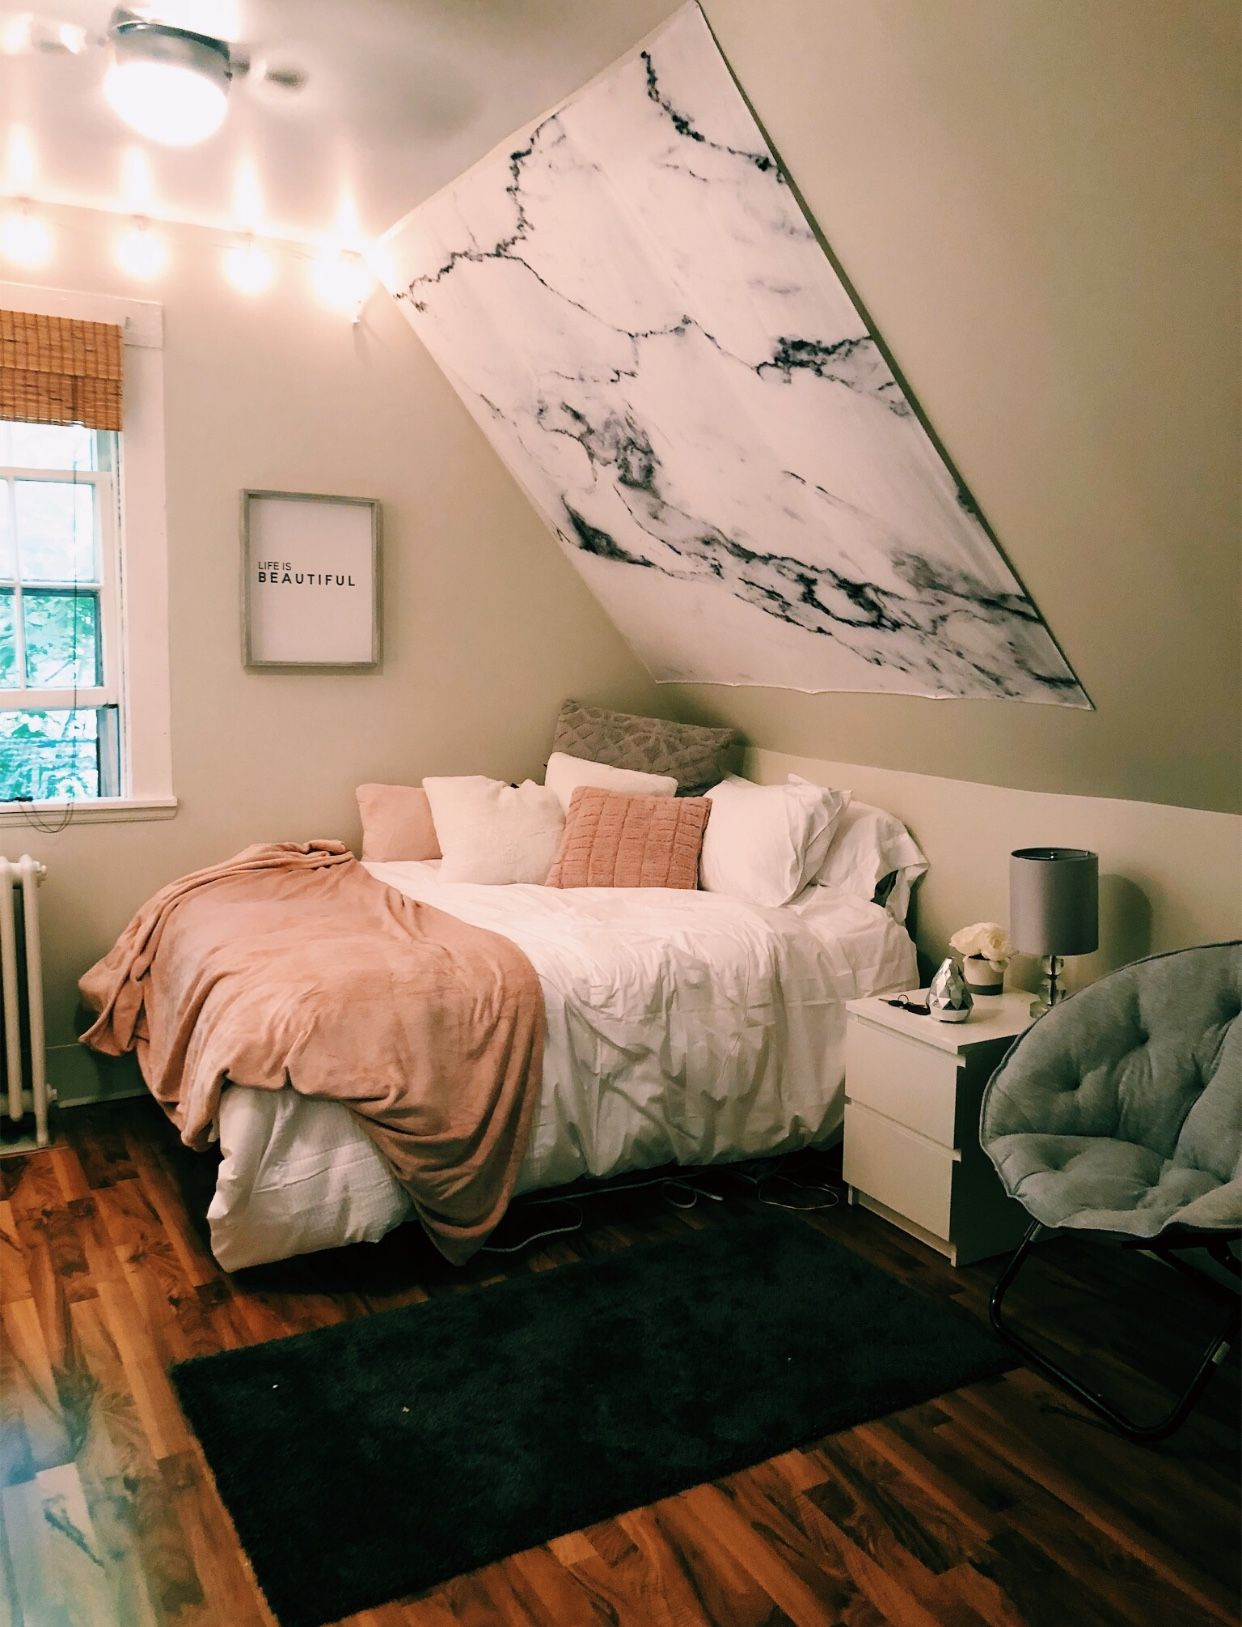 Excellent Use Of Lights And Color Schemes For A Small